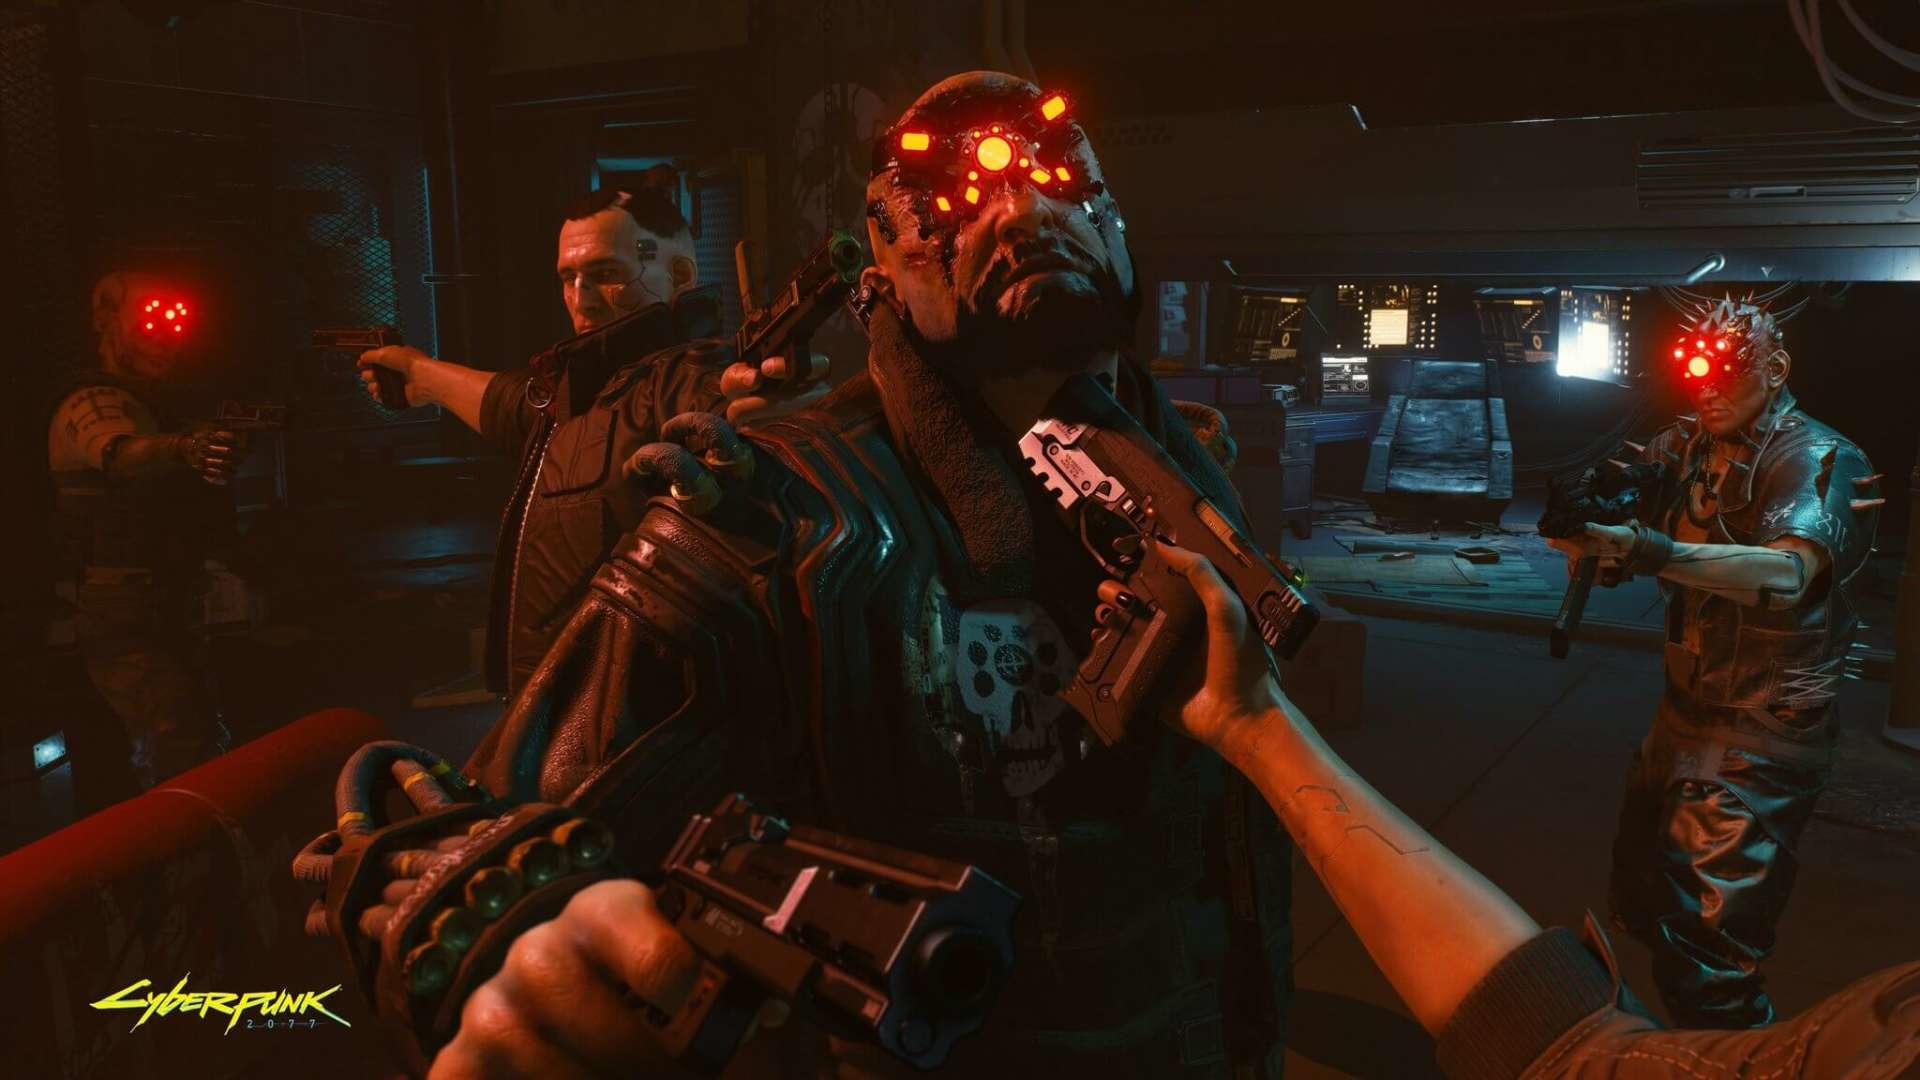 CD Projekt RED claims that Cyberpunk 2077's performance has reached a satisfying level